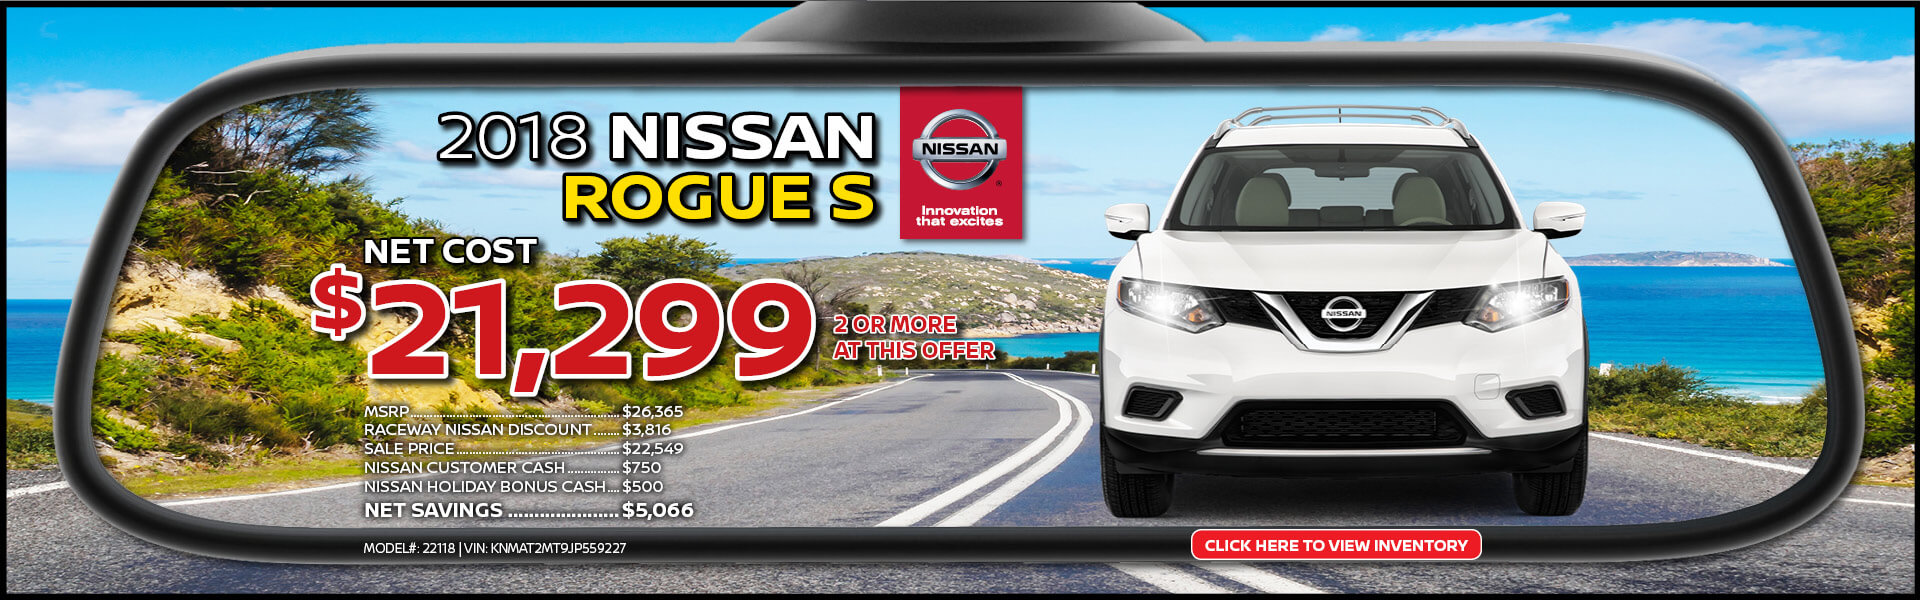 Nissan Rogue $21,299 Purchase